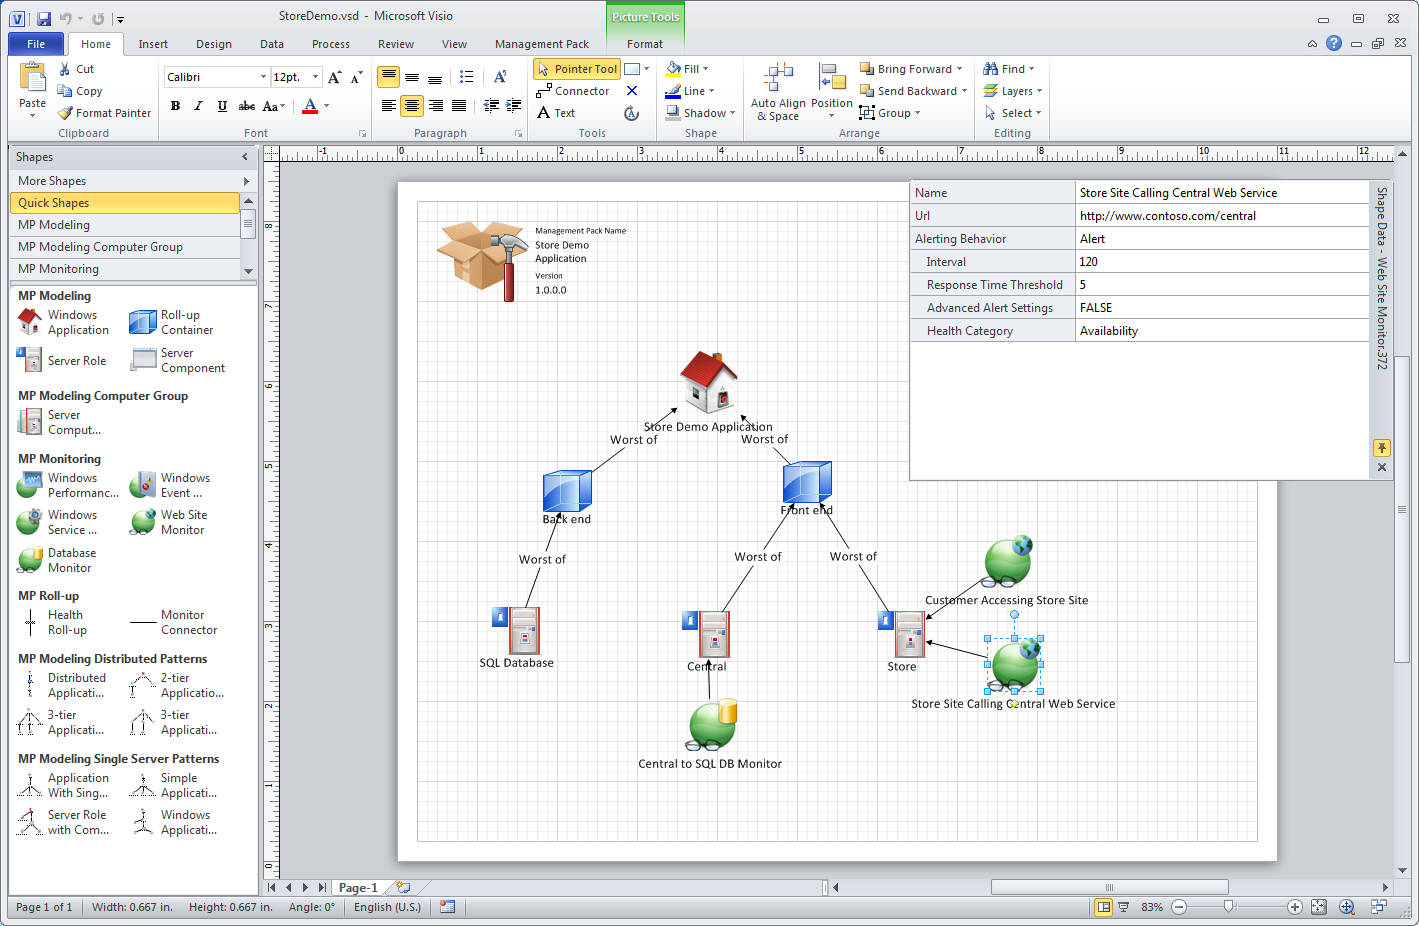 Visio management pack designer example technet articles united visio management pack designer example technet articles united states english technet wiki ccuart Choice Image